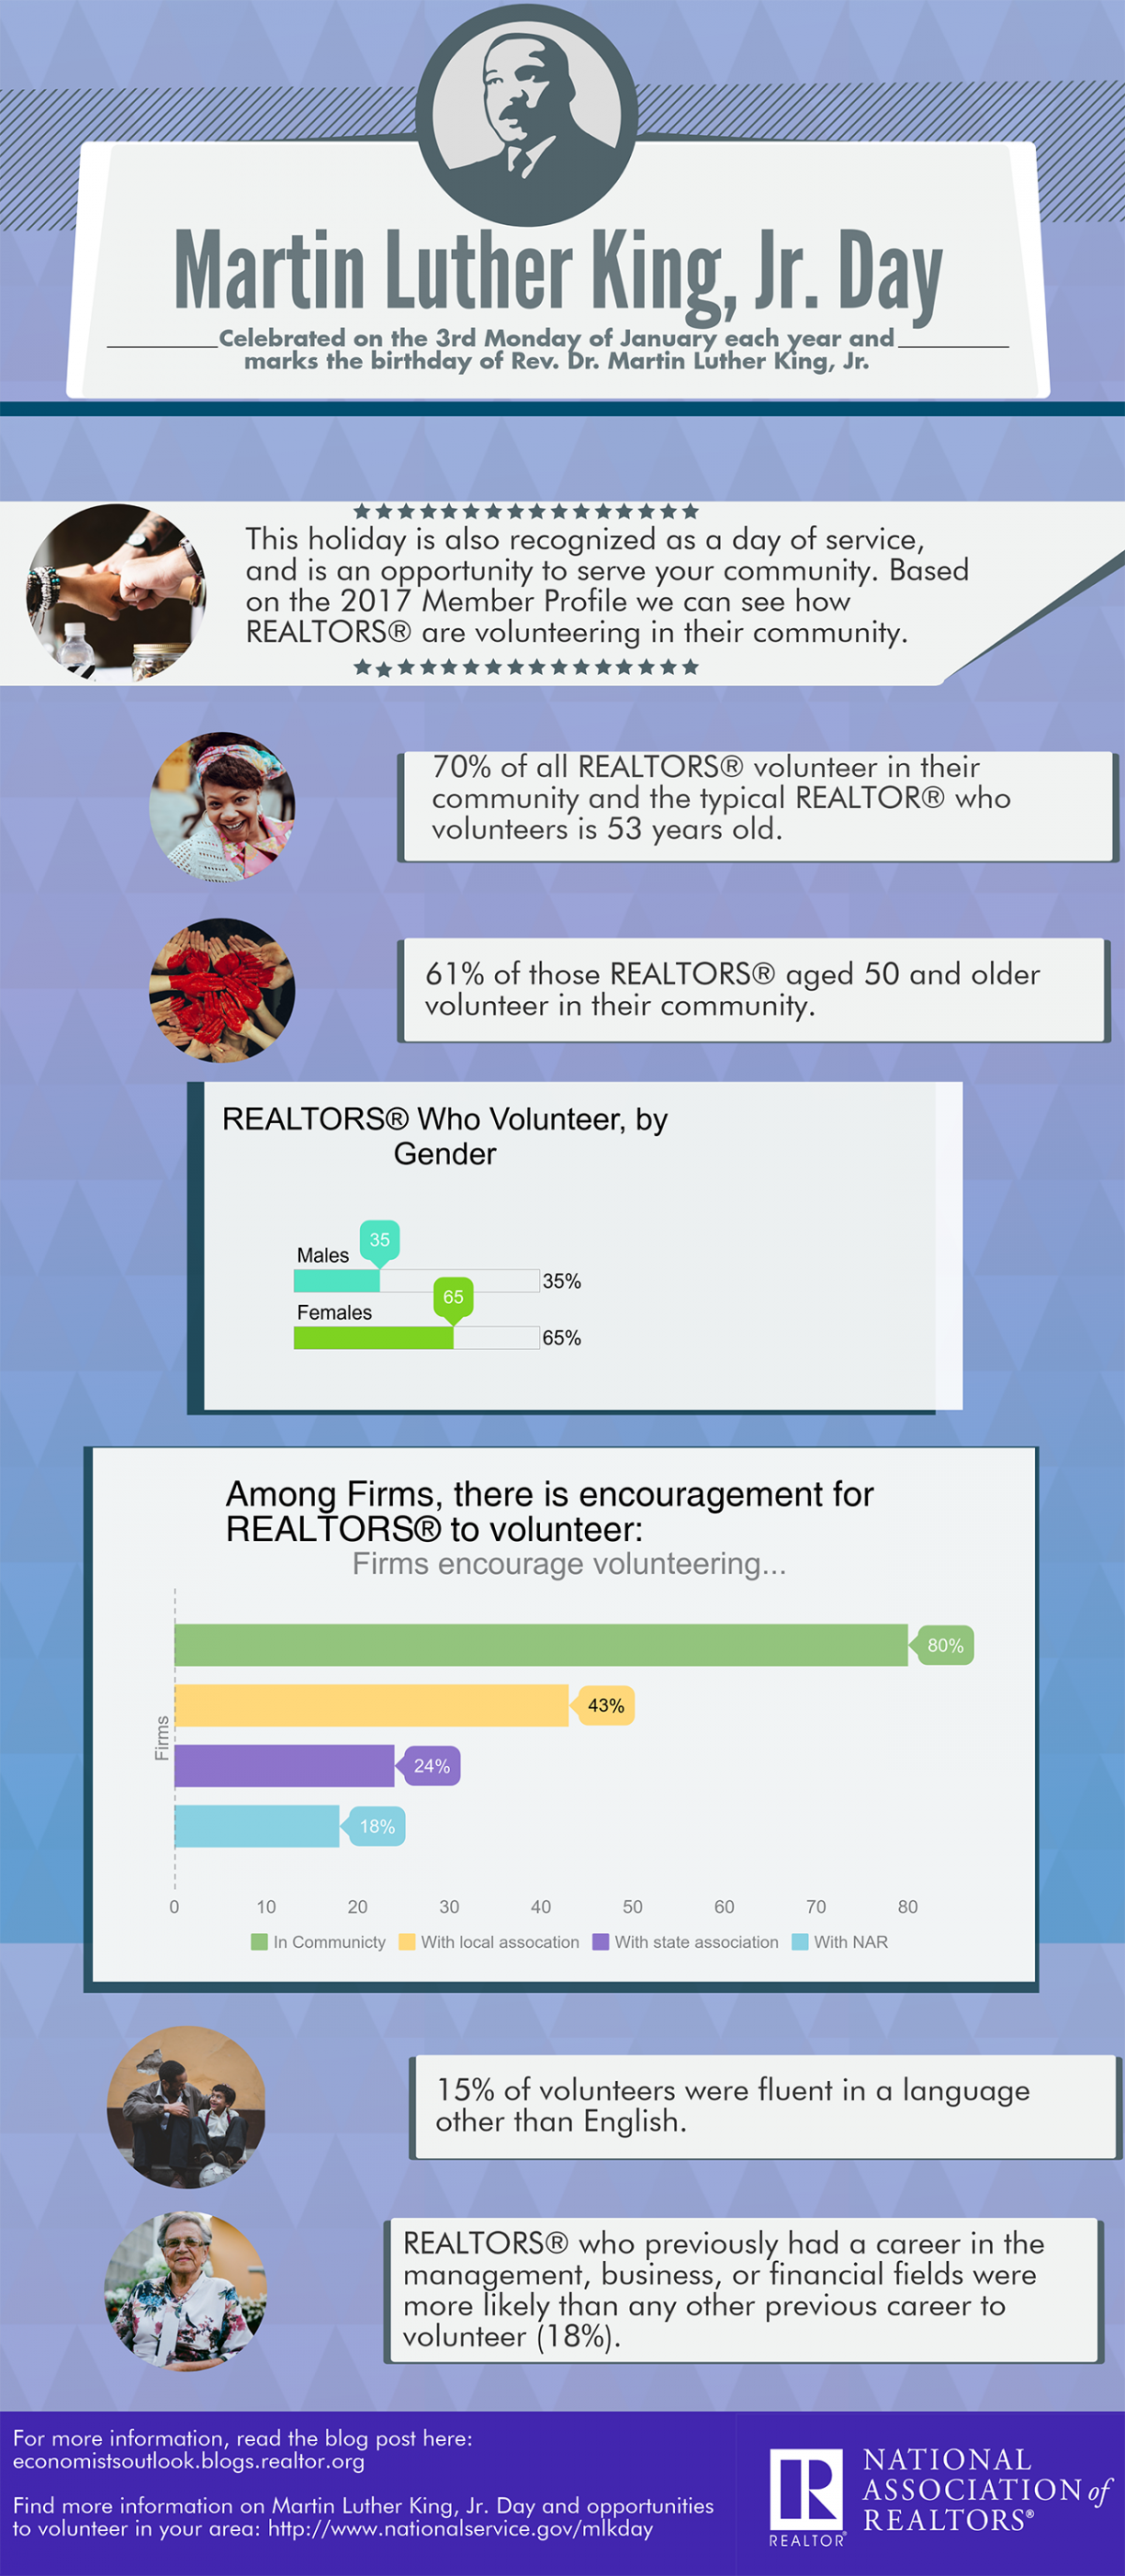 Infographic containing statistics on volunteer work done by REALTORS®